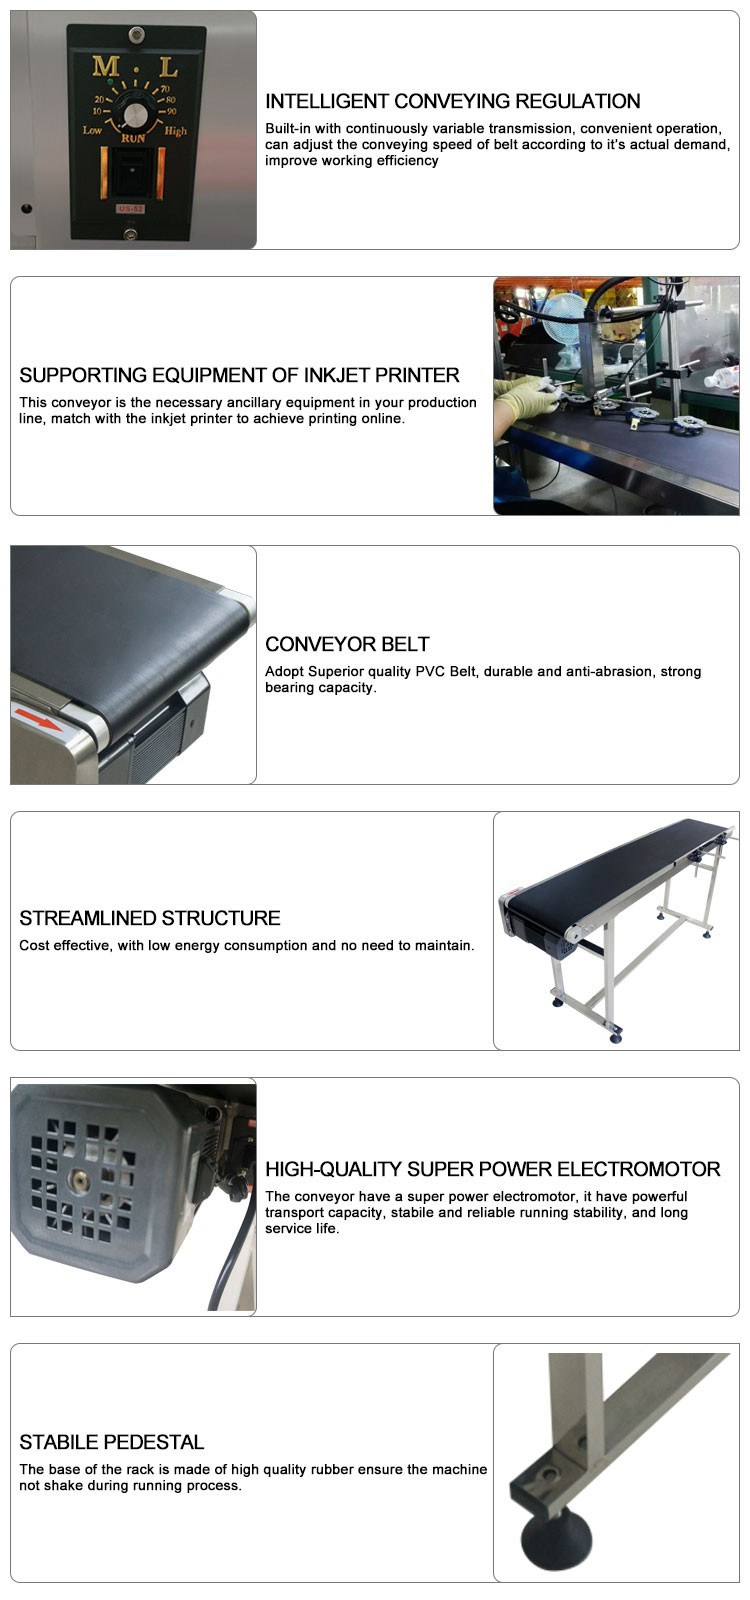 Industrial CIJ Ink Jet Printer Rubber Conveyor Belt